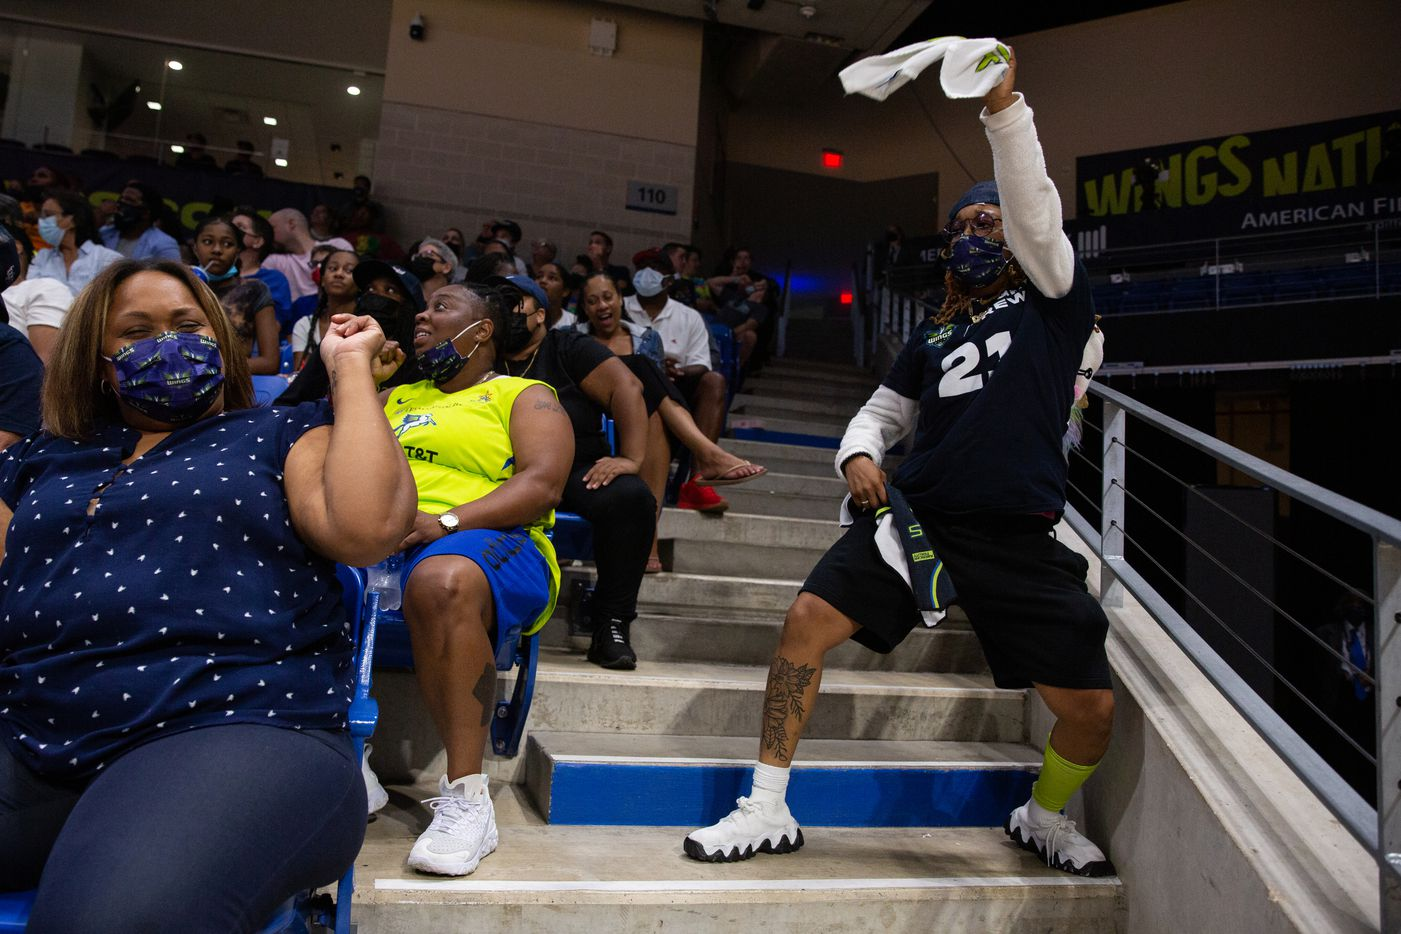 Alaya Cohen dances during the Dallas Wings game against New York Liberty at College Park Center in Arlington, TX on September 11, 2021.  (Shelby Tauber/Special Contributor)